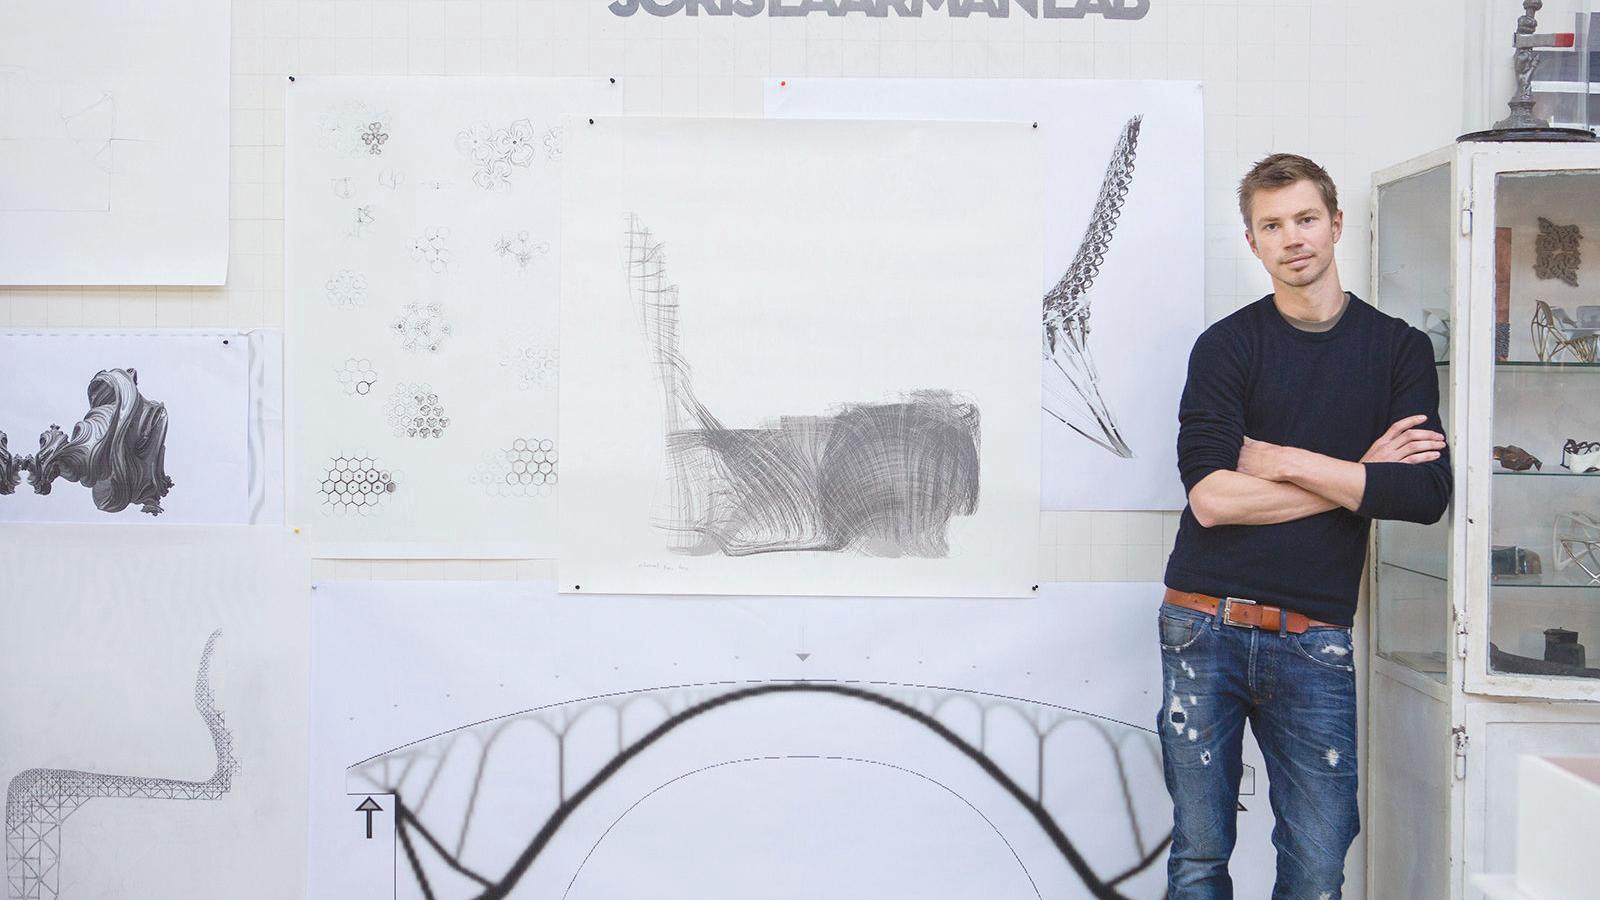 """Joris Laarman stands with his arms folded against a wall of sketches and inspiration under a sign that reads """"Joris Laarman Lab."""""""